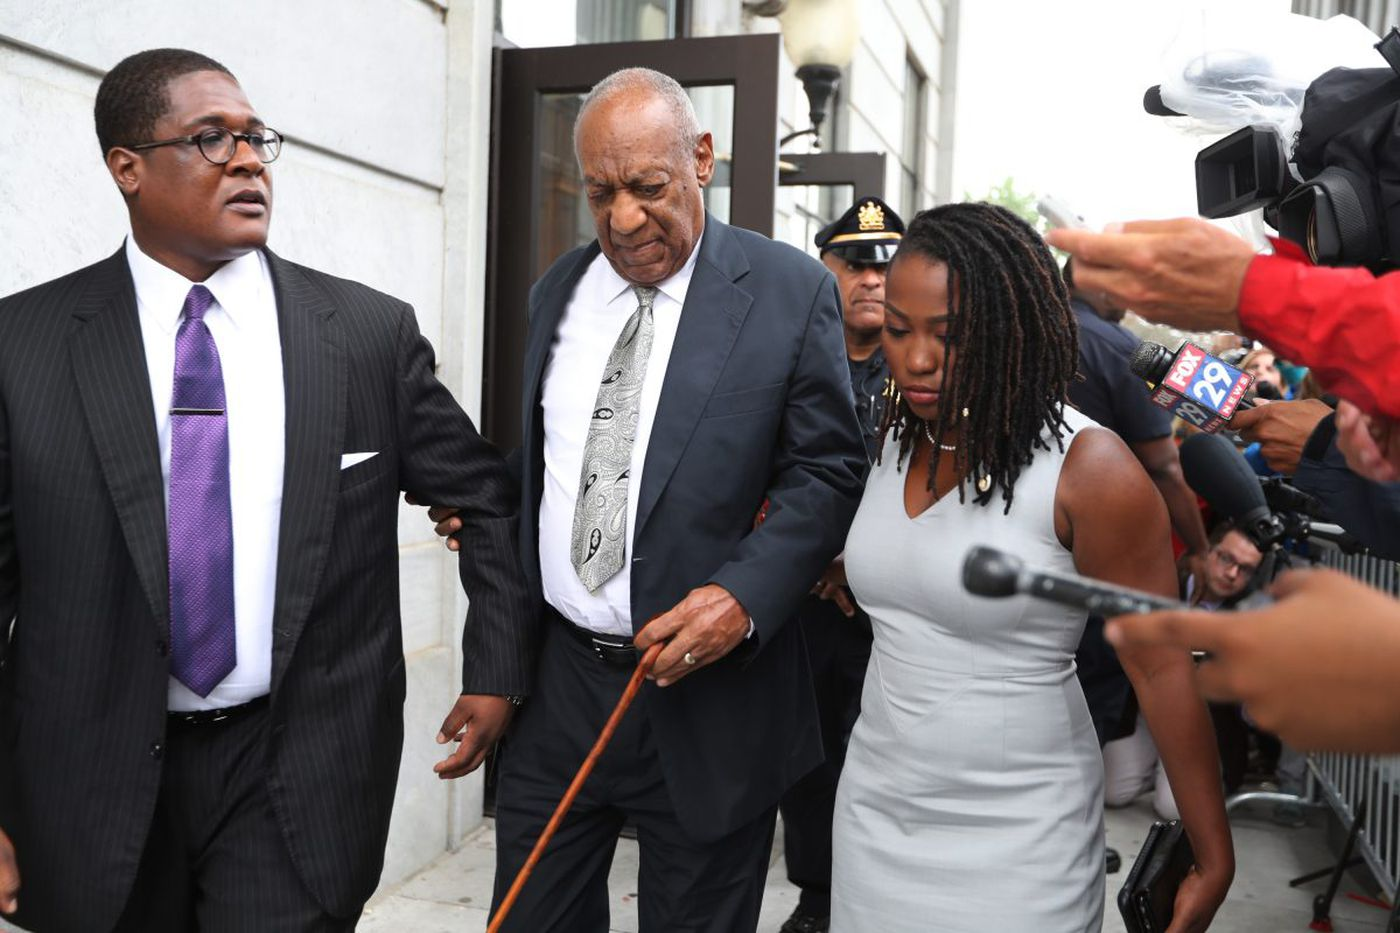 Cosby trial alternate juror: 'I would have probably convicted'